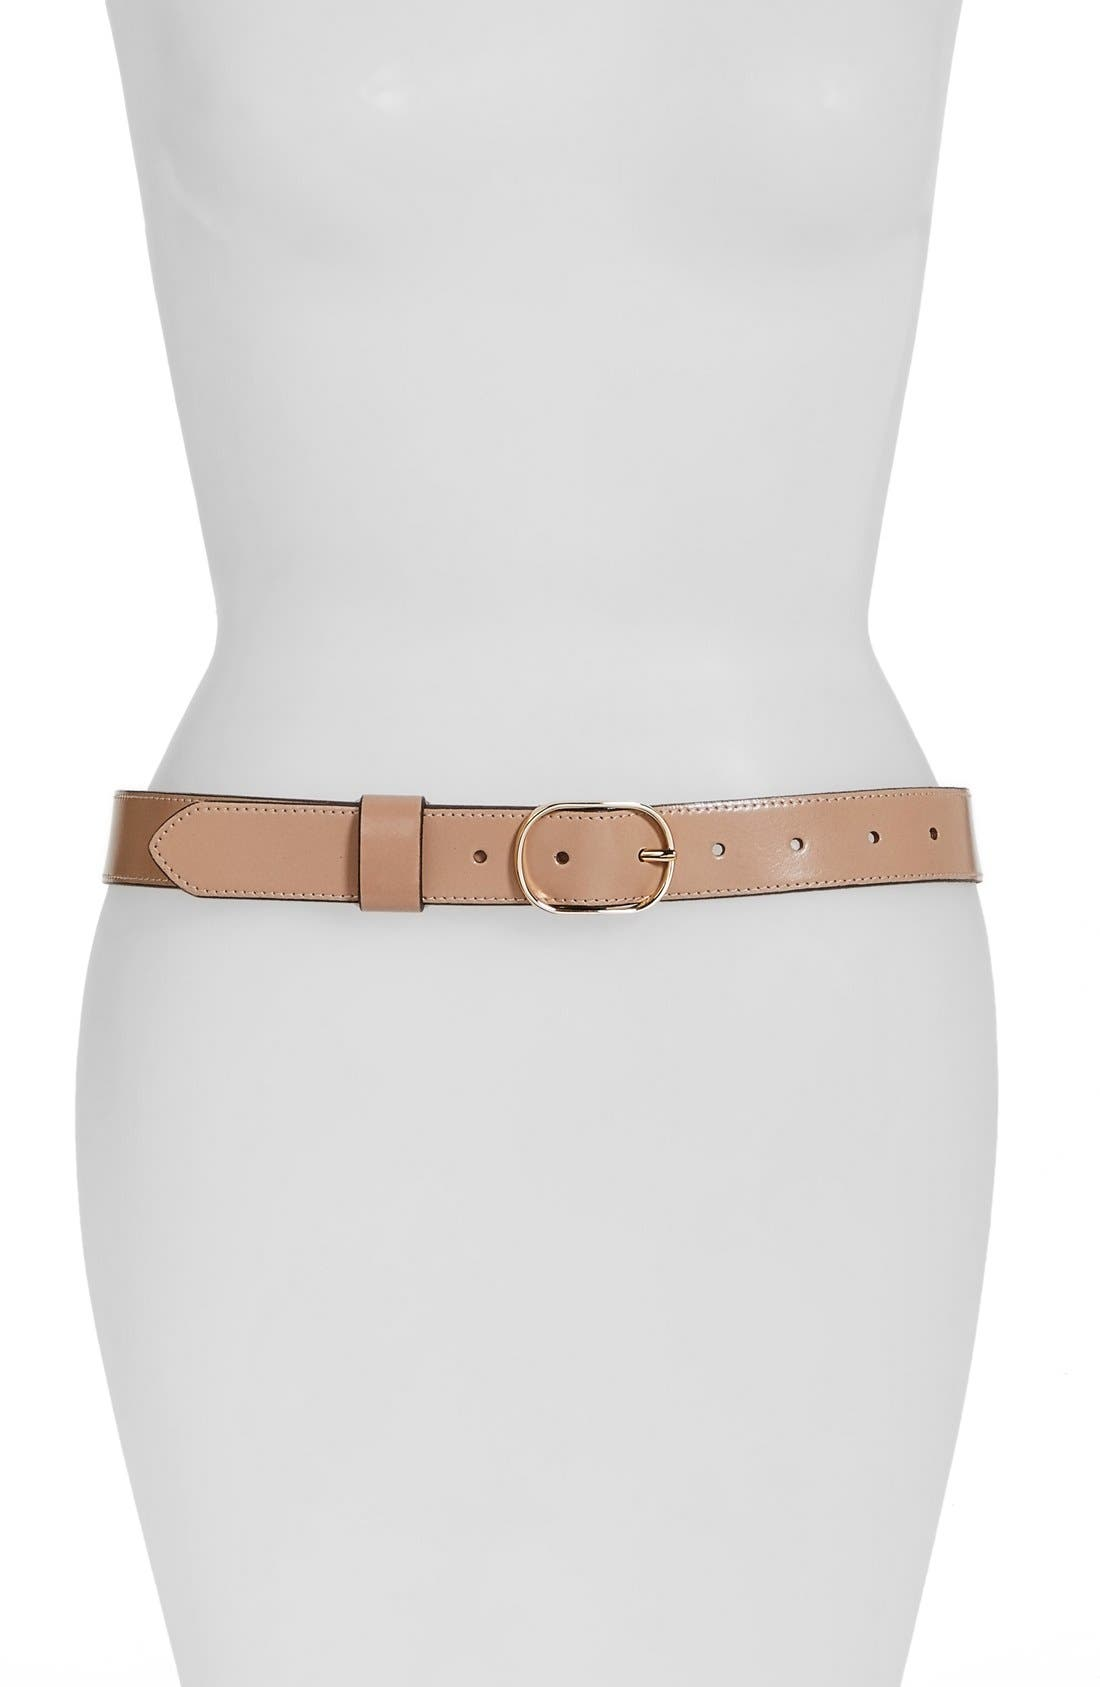 Tailored Trouser Leather Belt,                             Main thumbnail 1, color,                             250